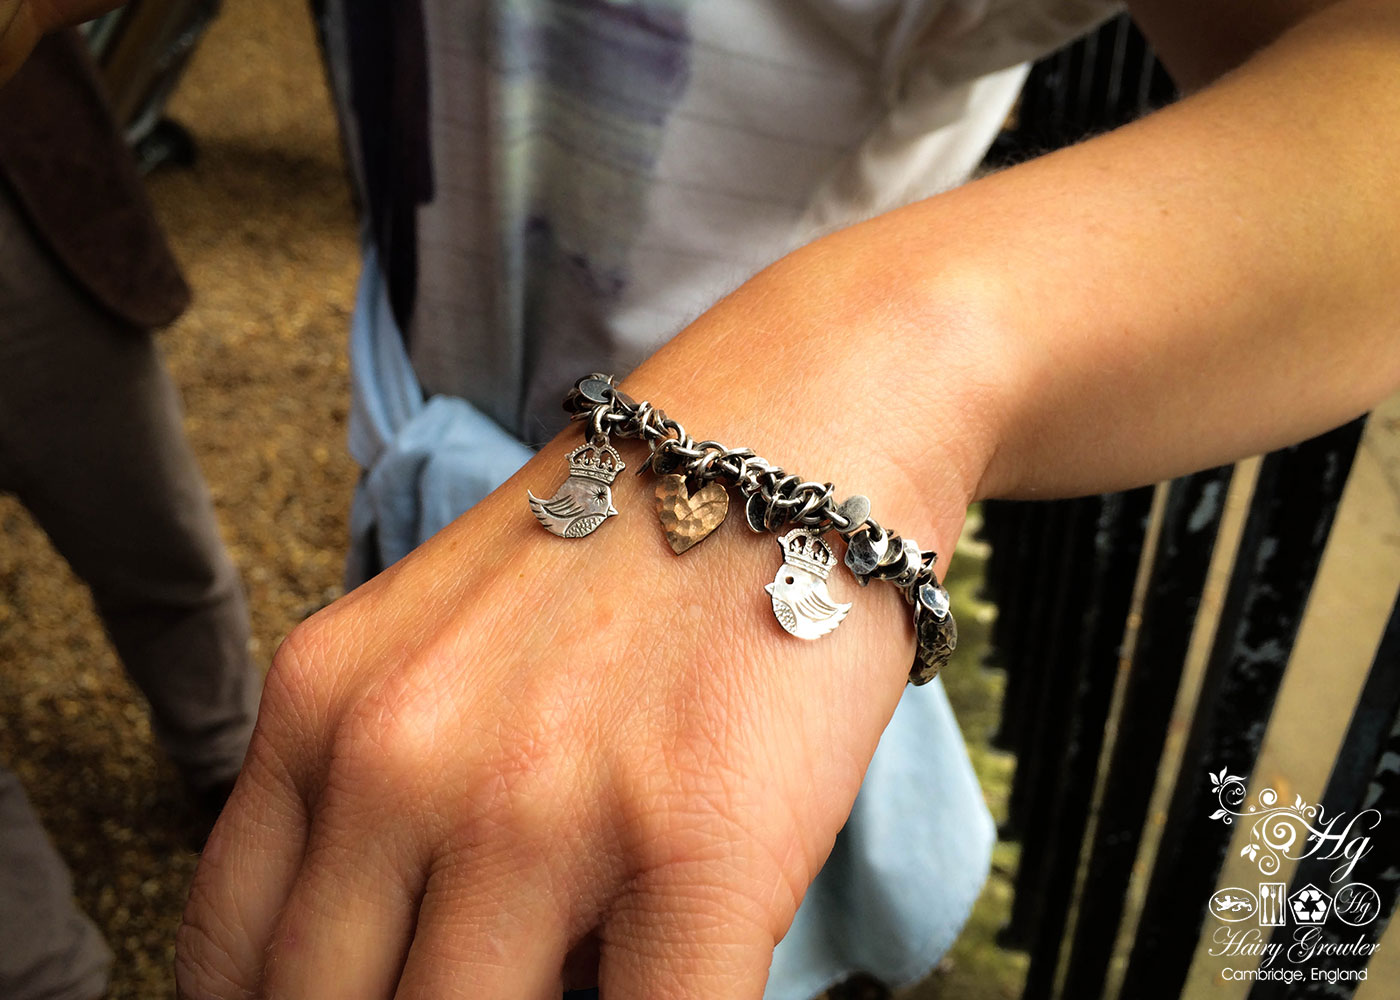 handcrafted teeny weeny Kingsy Queeny bird bracelet upcycled silver threepence coins